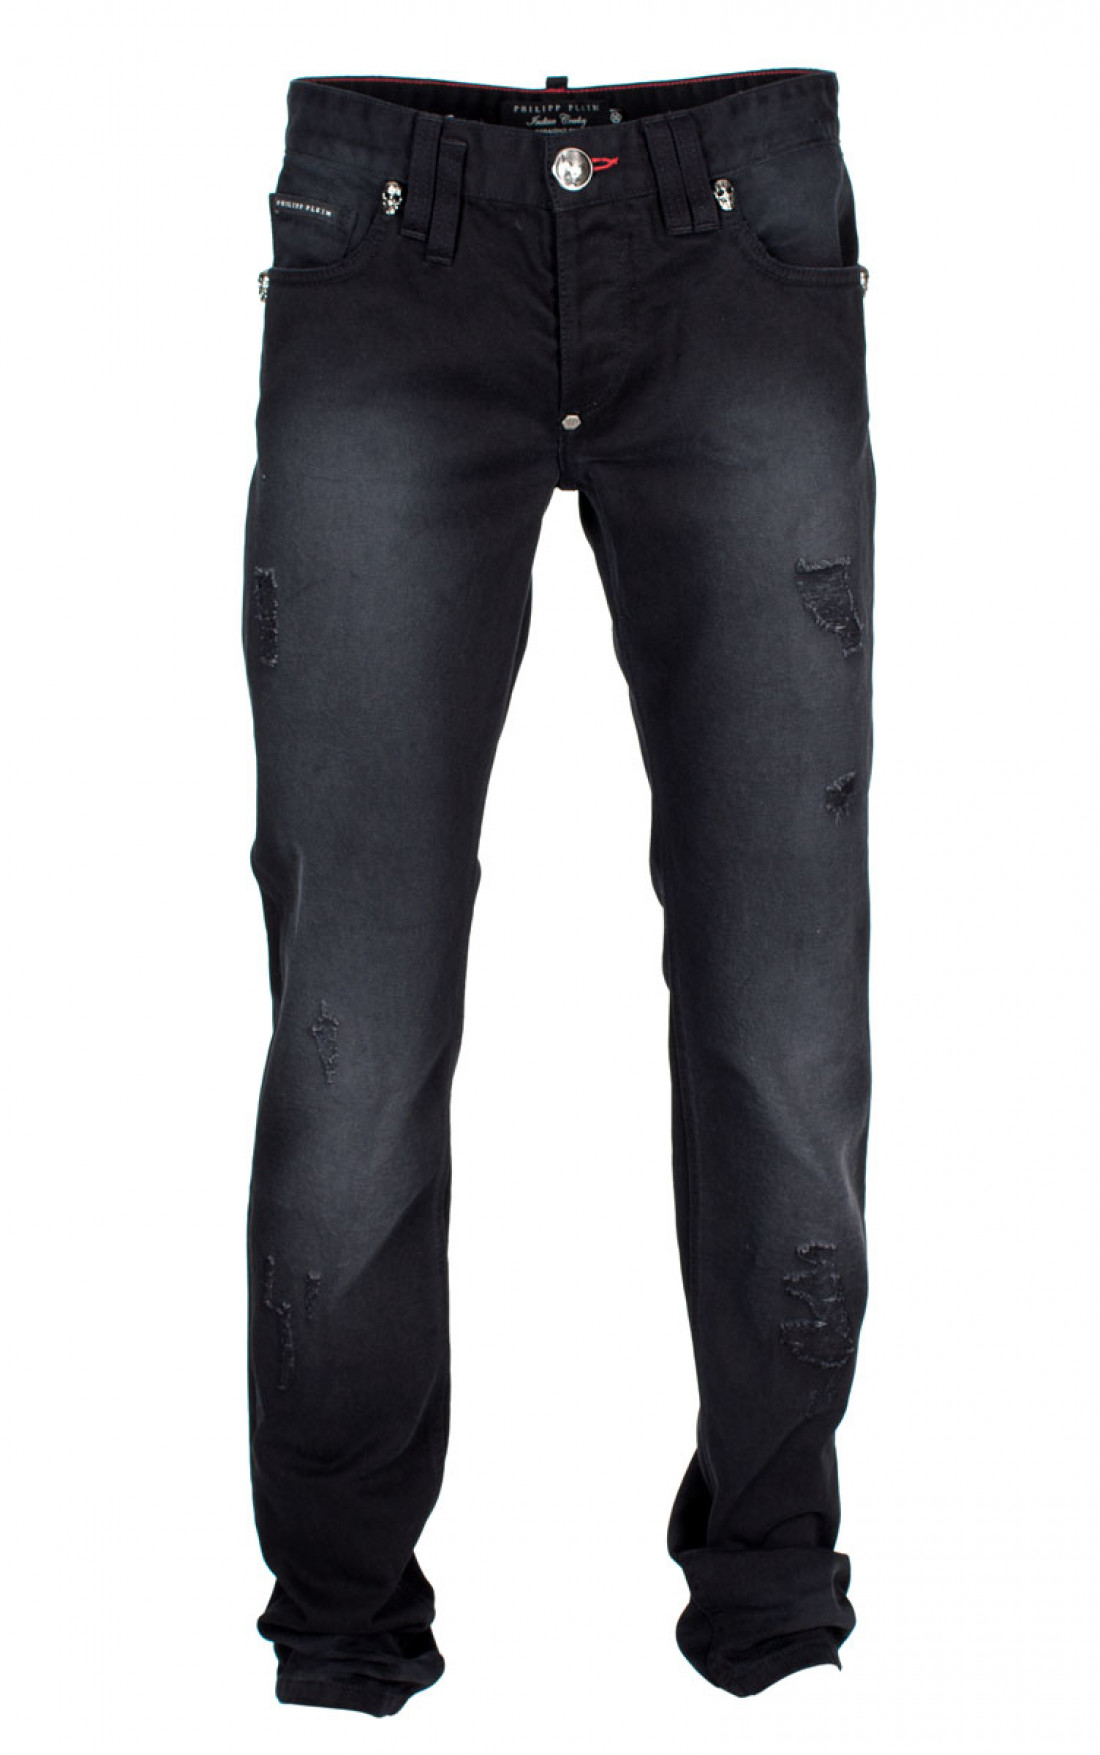 distressed straight-leg jeans - Black Philipp Plein Clearance Outlet Locations Huge Surprise Cheap Online Clearance Reliable Clearance Eastbay 6bZJmQ9